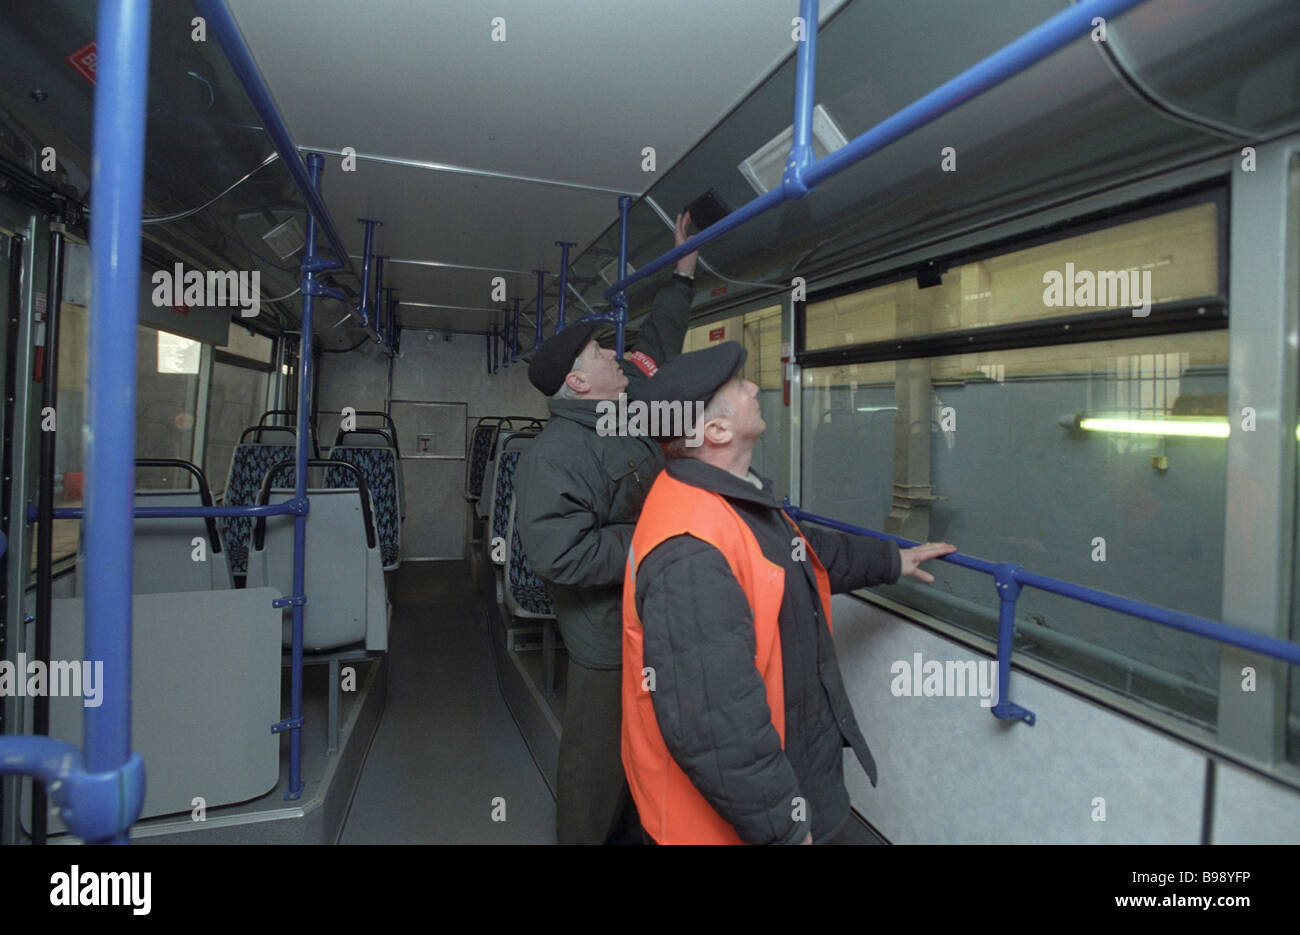 In the passenger compartment of the Sadko low floor trolleybus that can operate both on line and off line - Stock Image